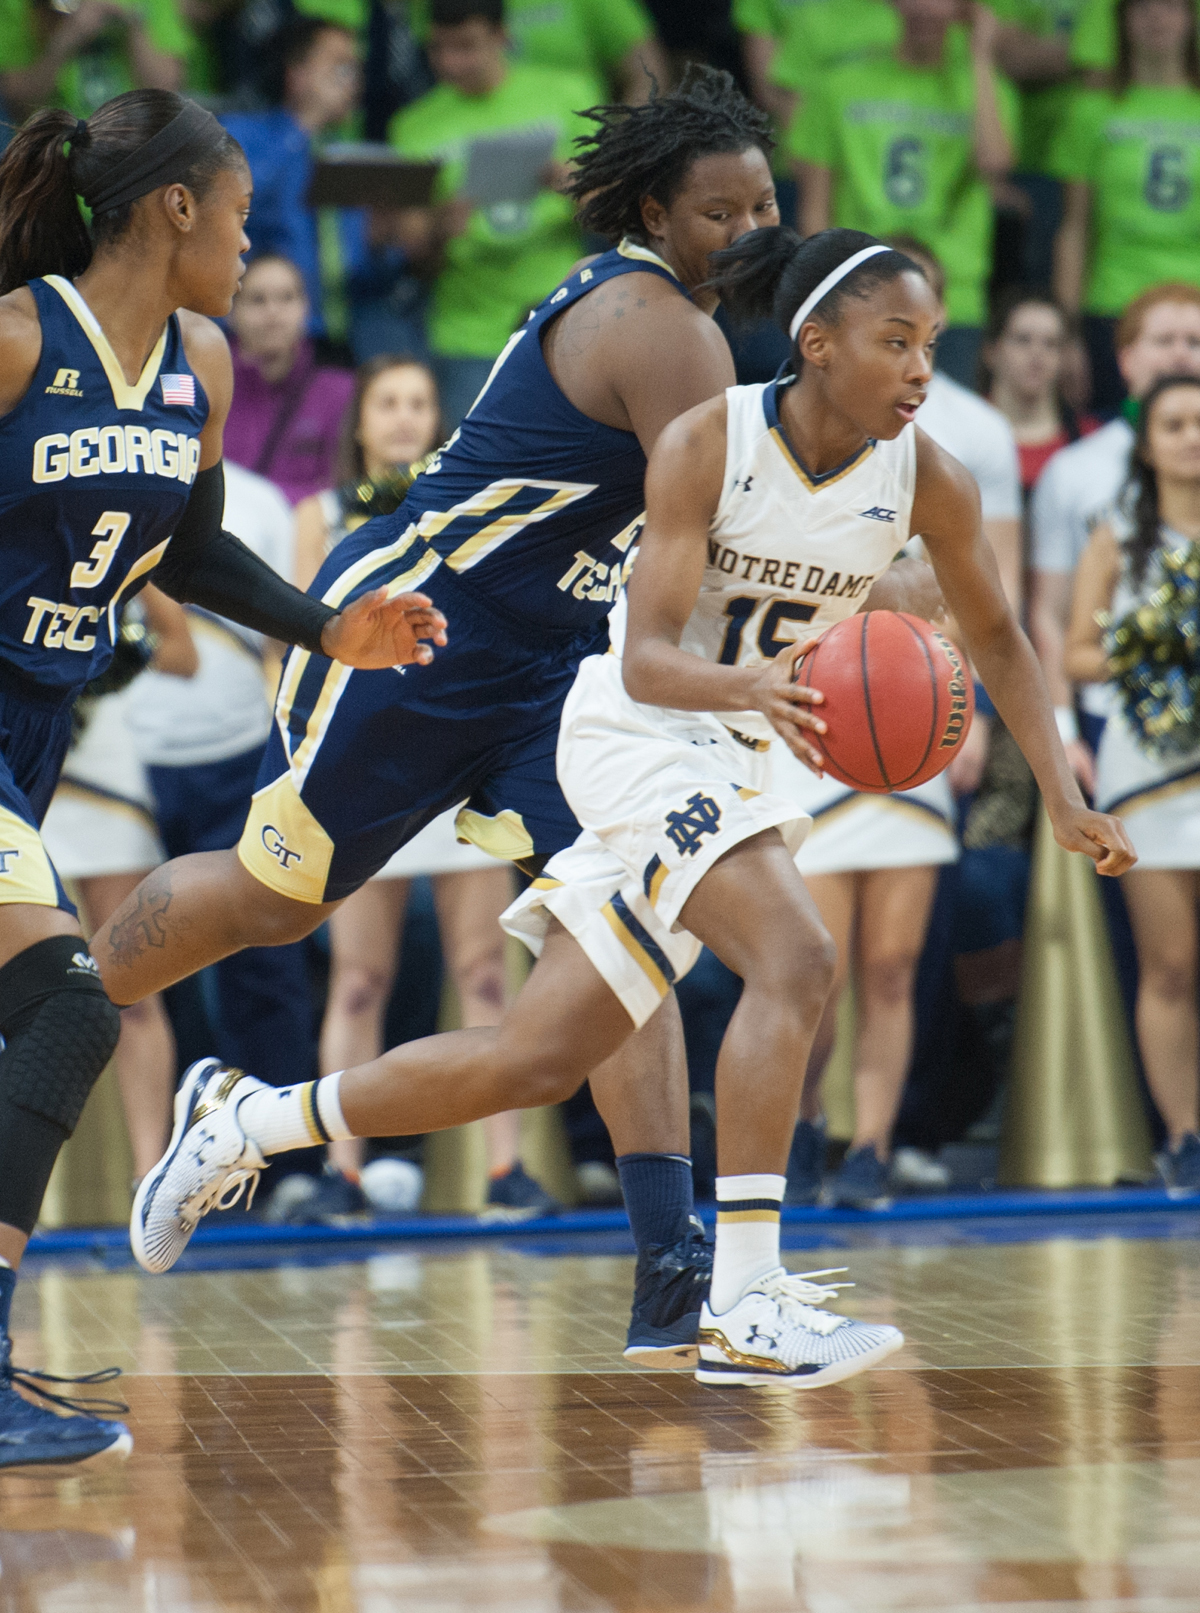 Irish sophomore guard Lindsay Allens races past a Georgia Tech defender in the Notre Dame win on Jan. 22.